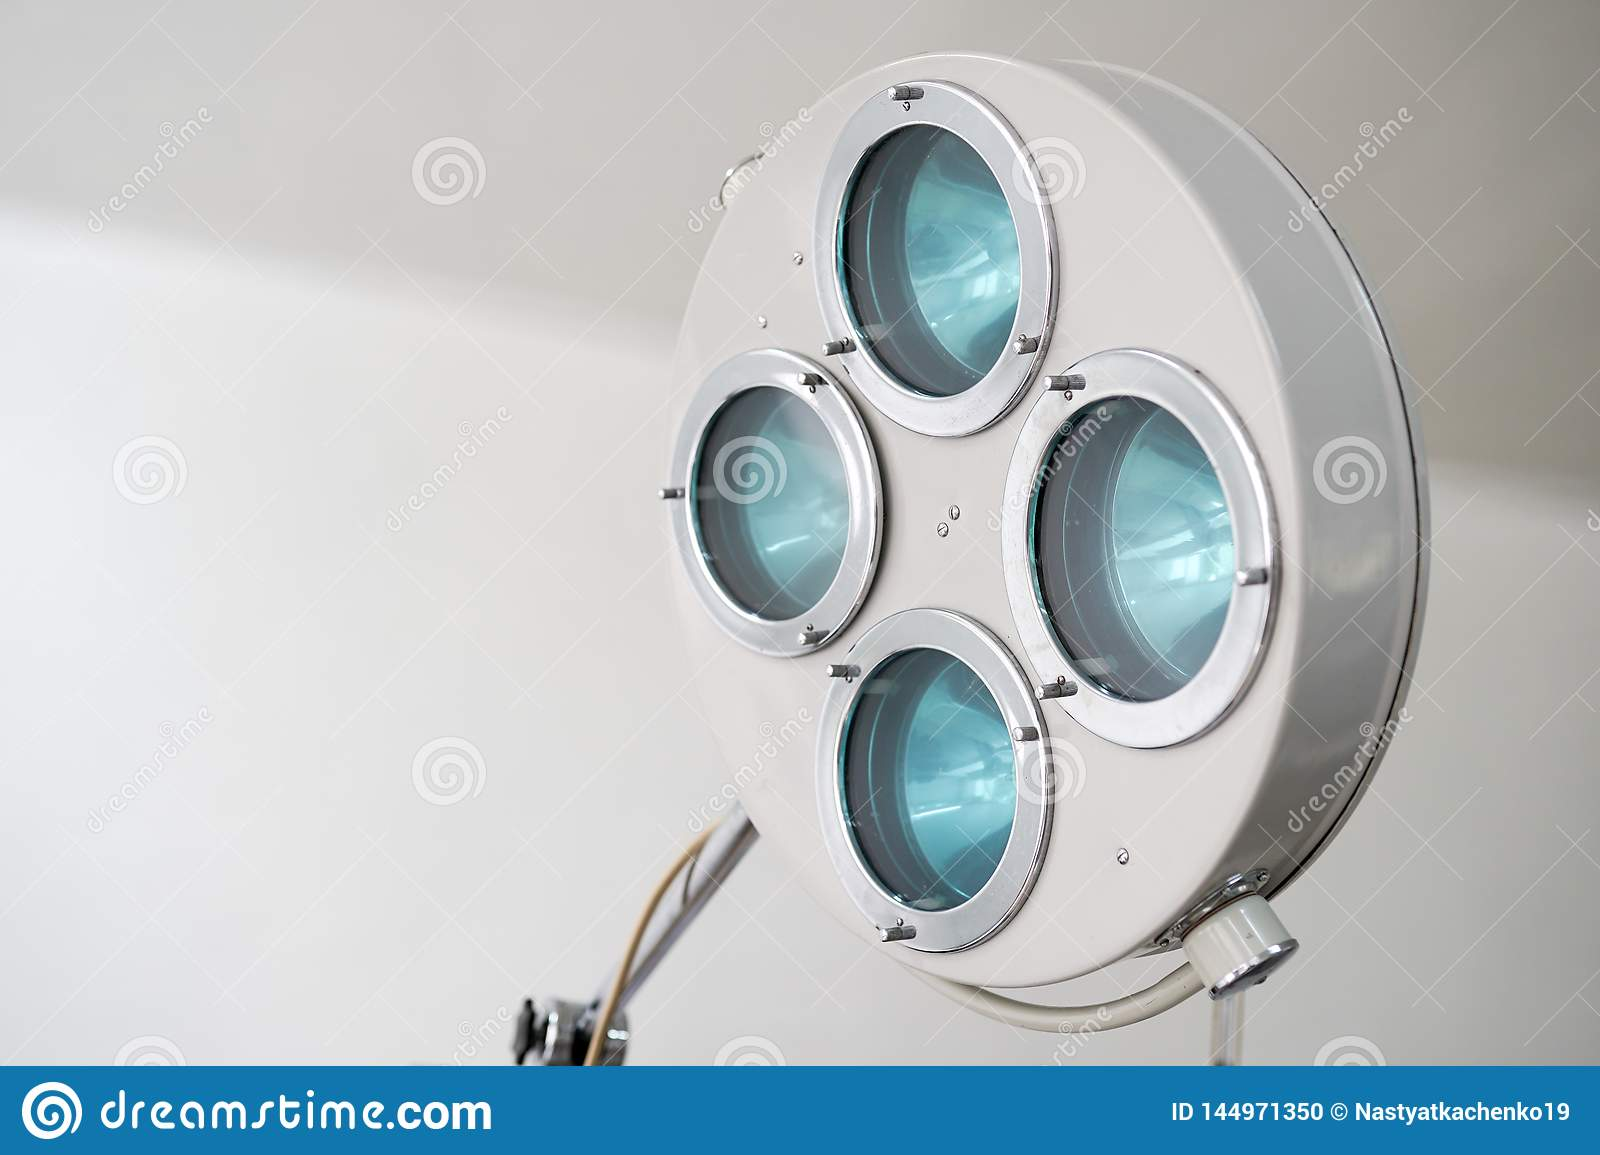 Surgical lamp and medical devices in the operating room. Background